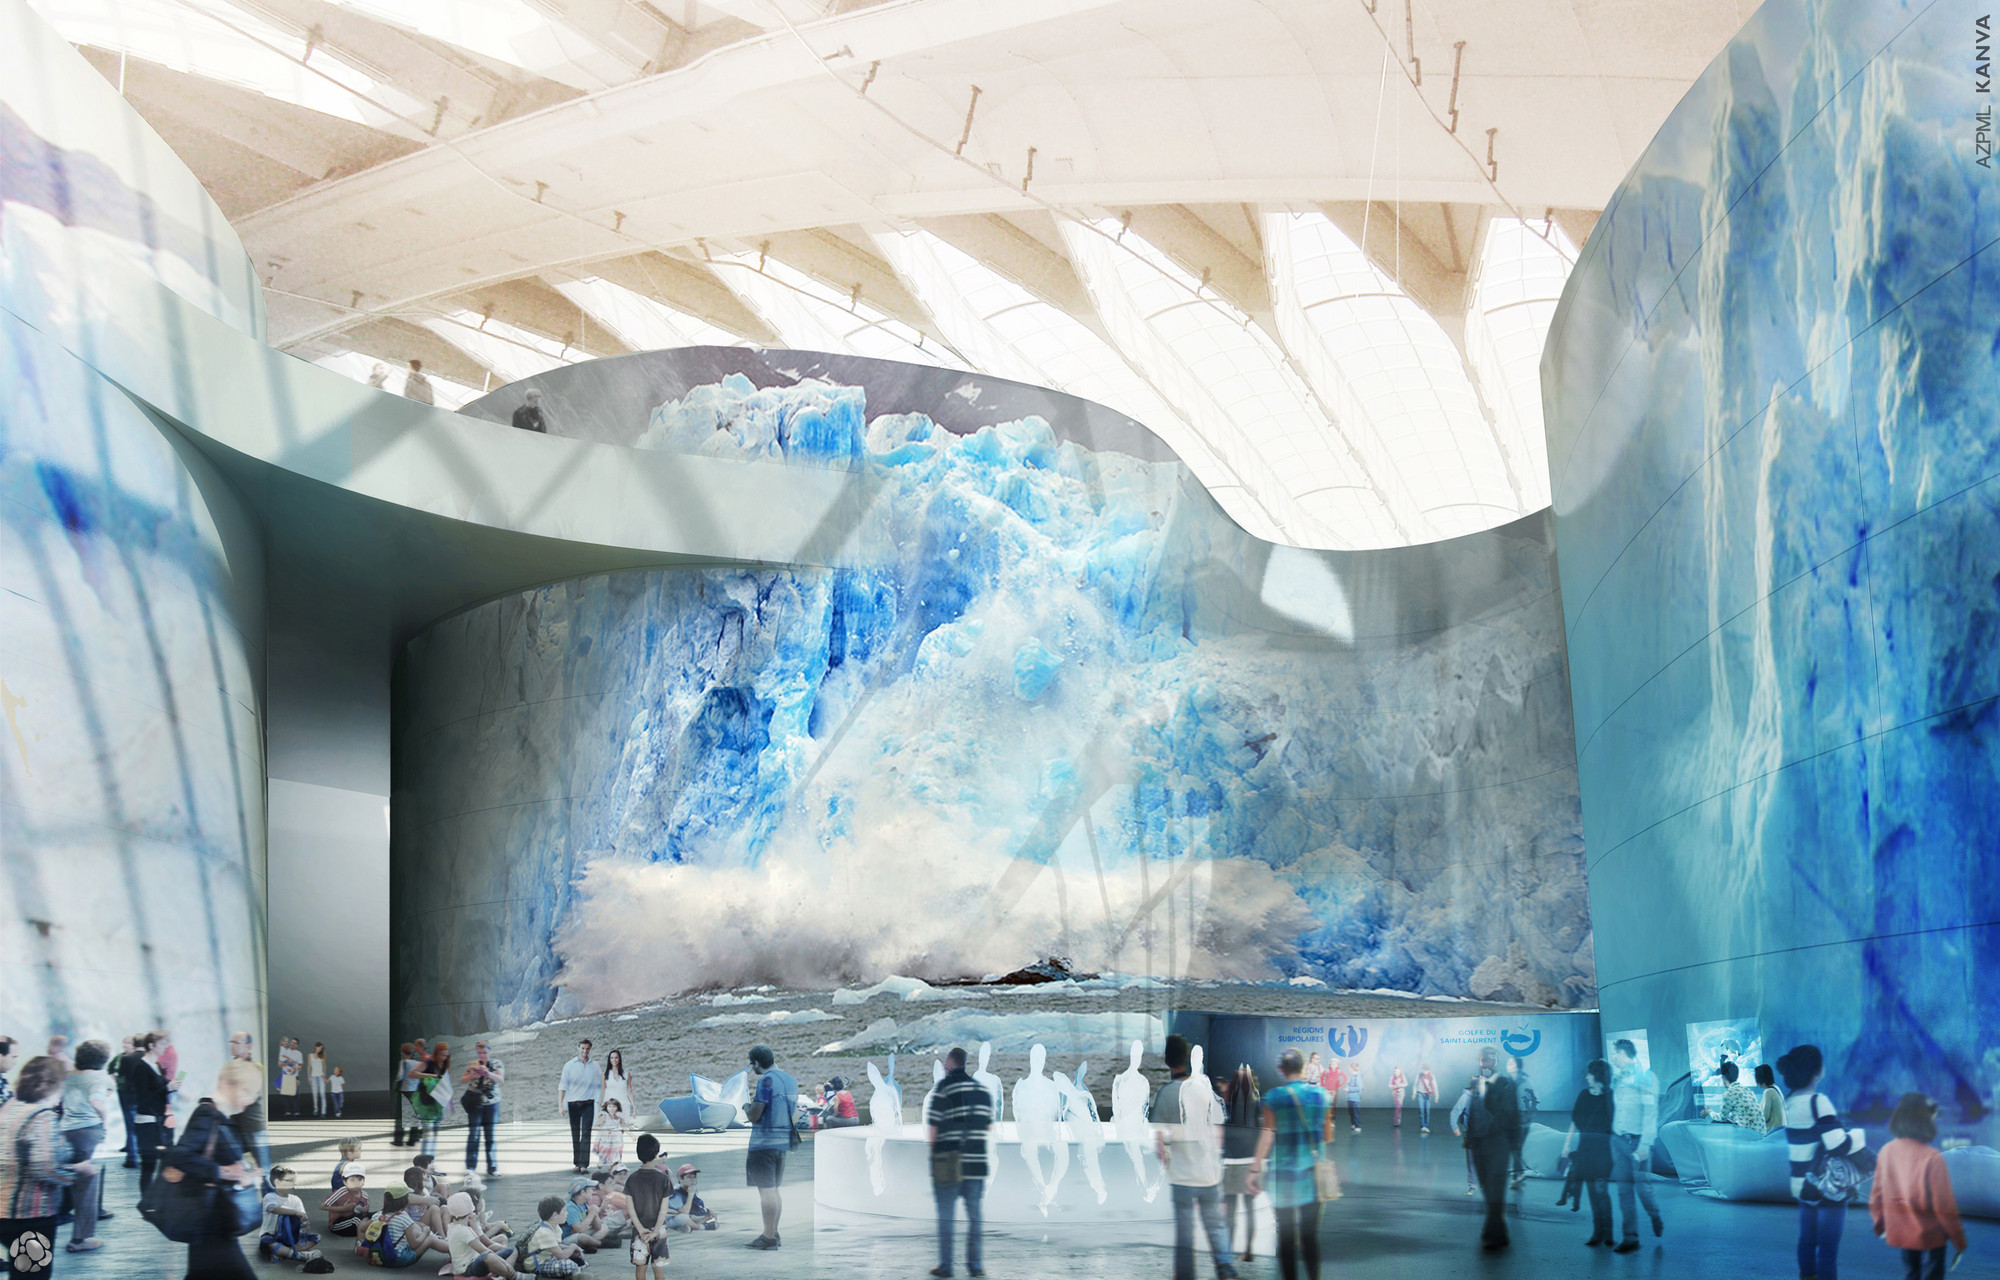 AZPML and KANVA Reimagine Montréal's Biodome in Winning Competition Design, Wall Projection. Image Courtesy of AZMPL